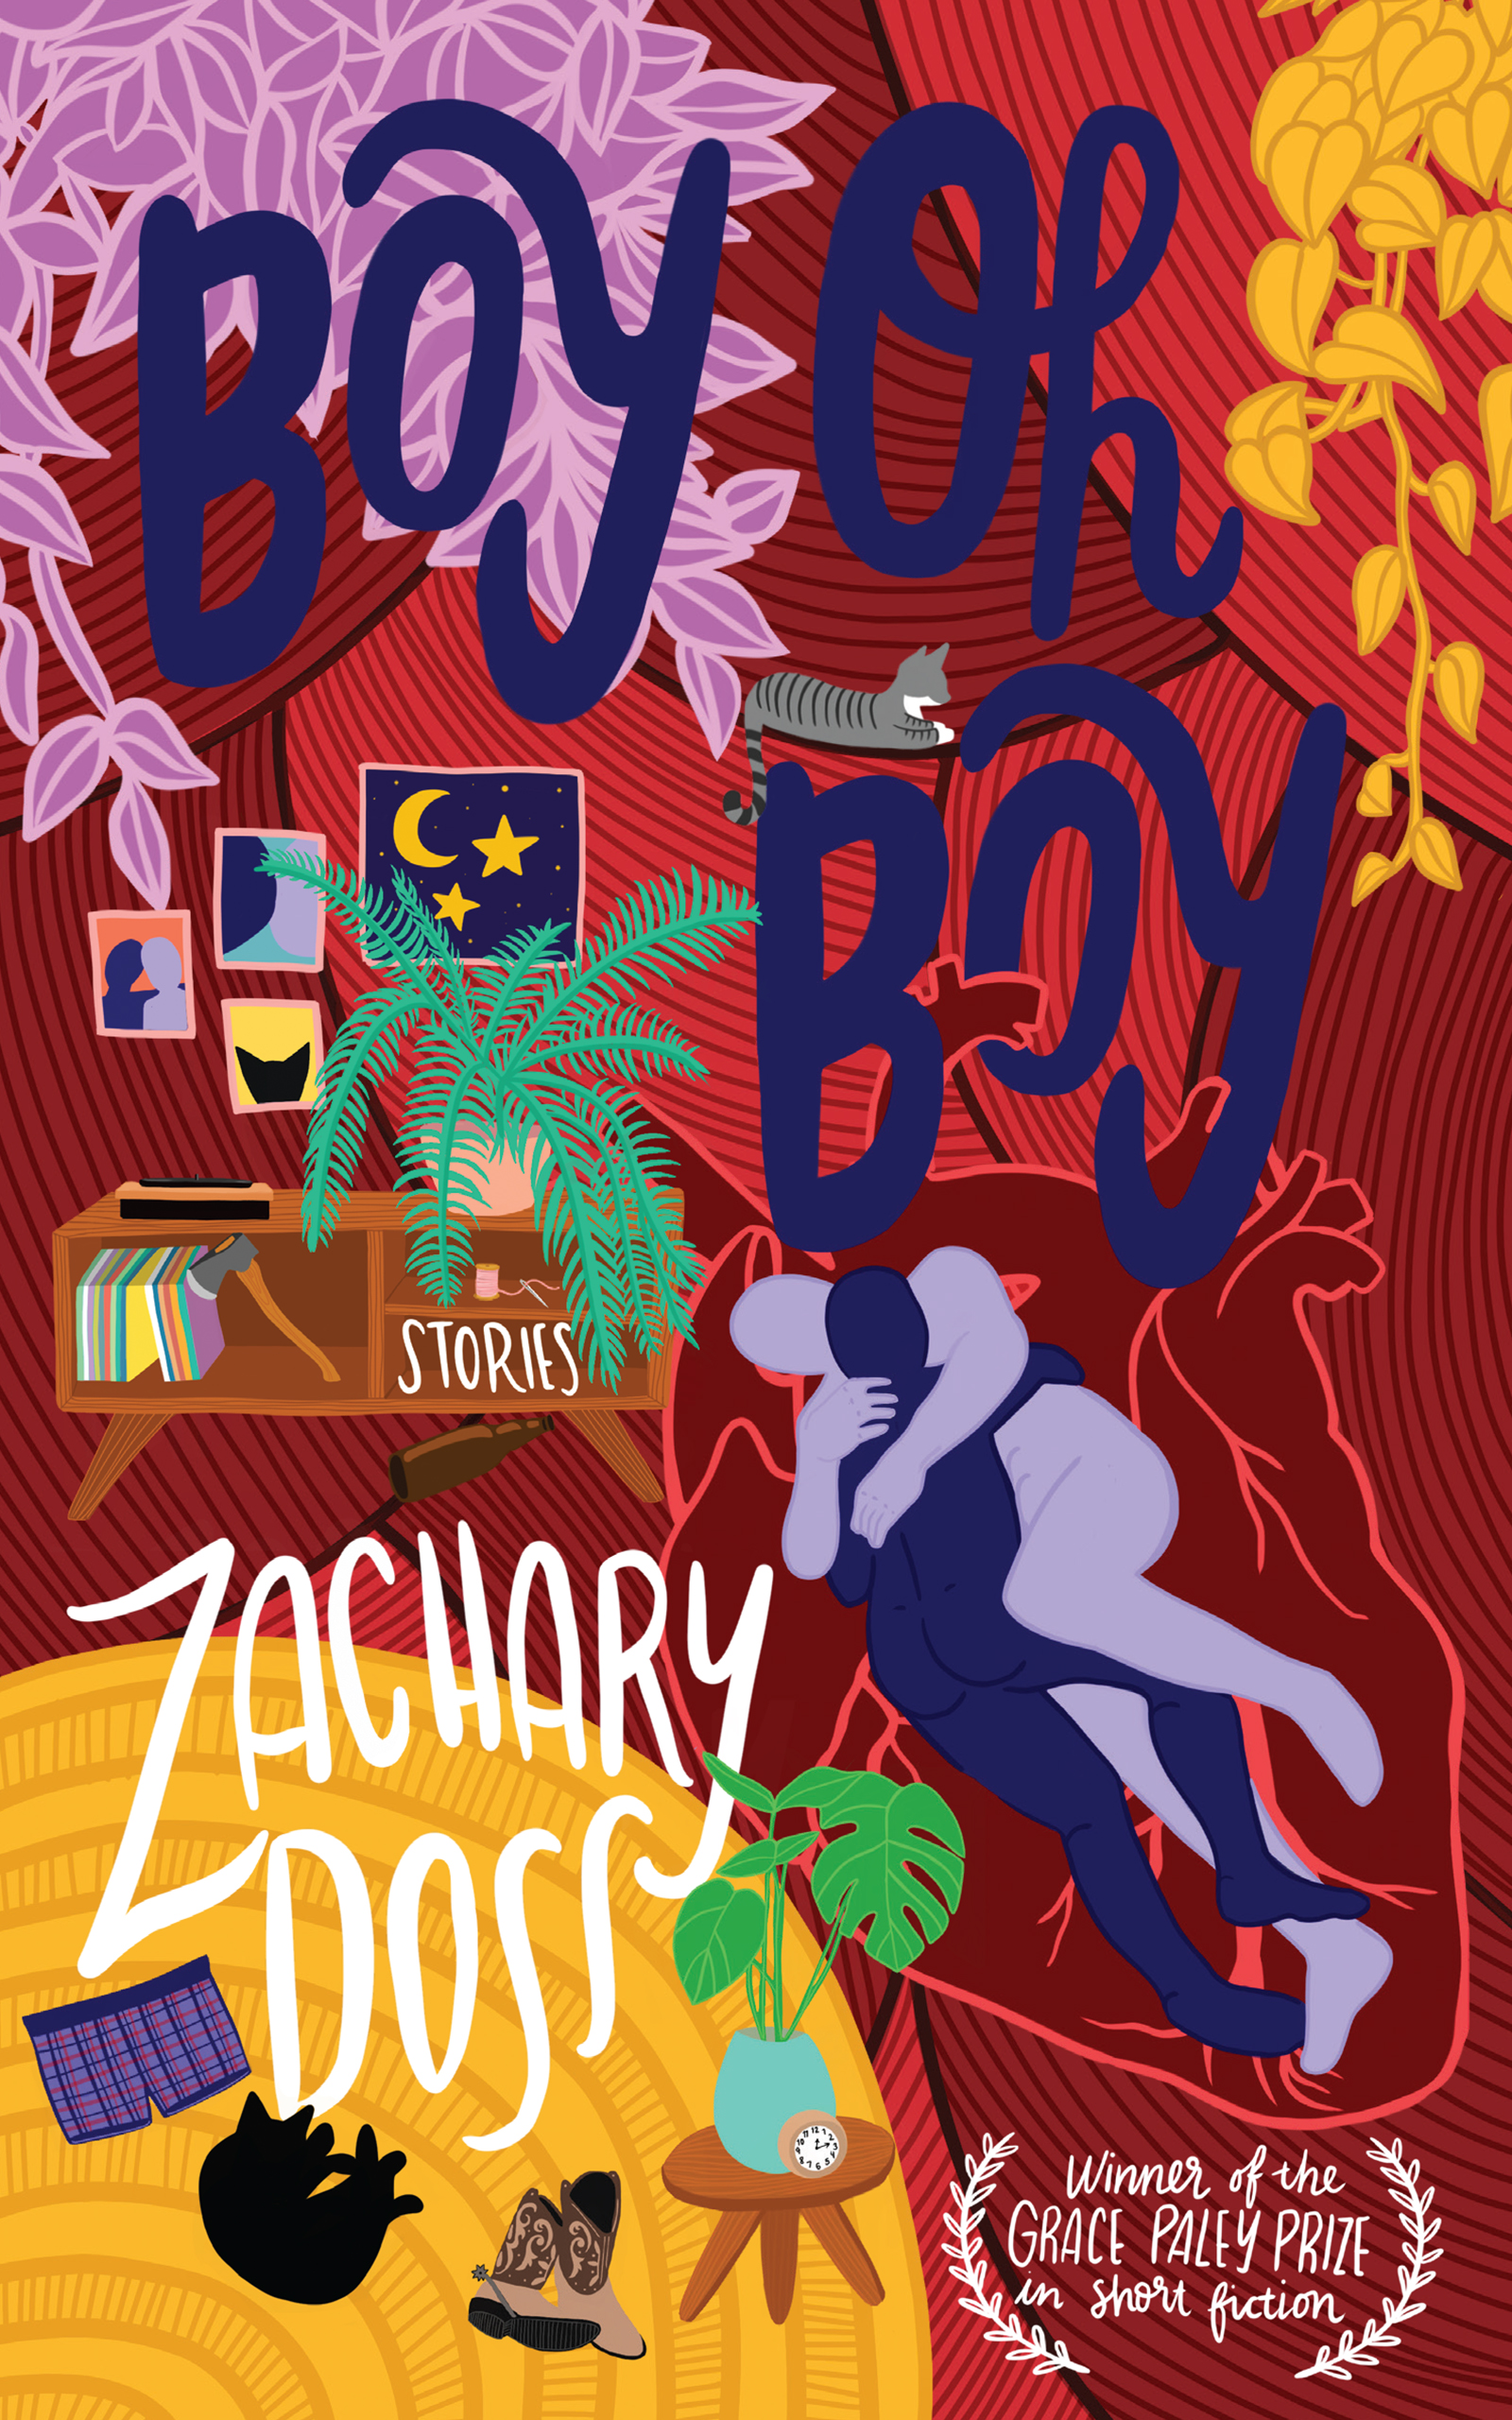 A colorful graphic design of an apartment room with a yellow rug and two people intertwined together with blue script that reads Boy Oh Boy by Zachary Doss.